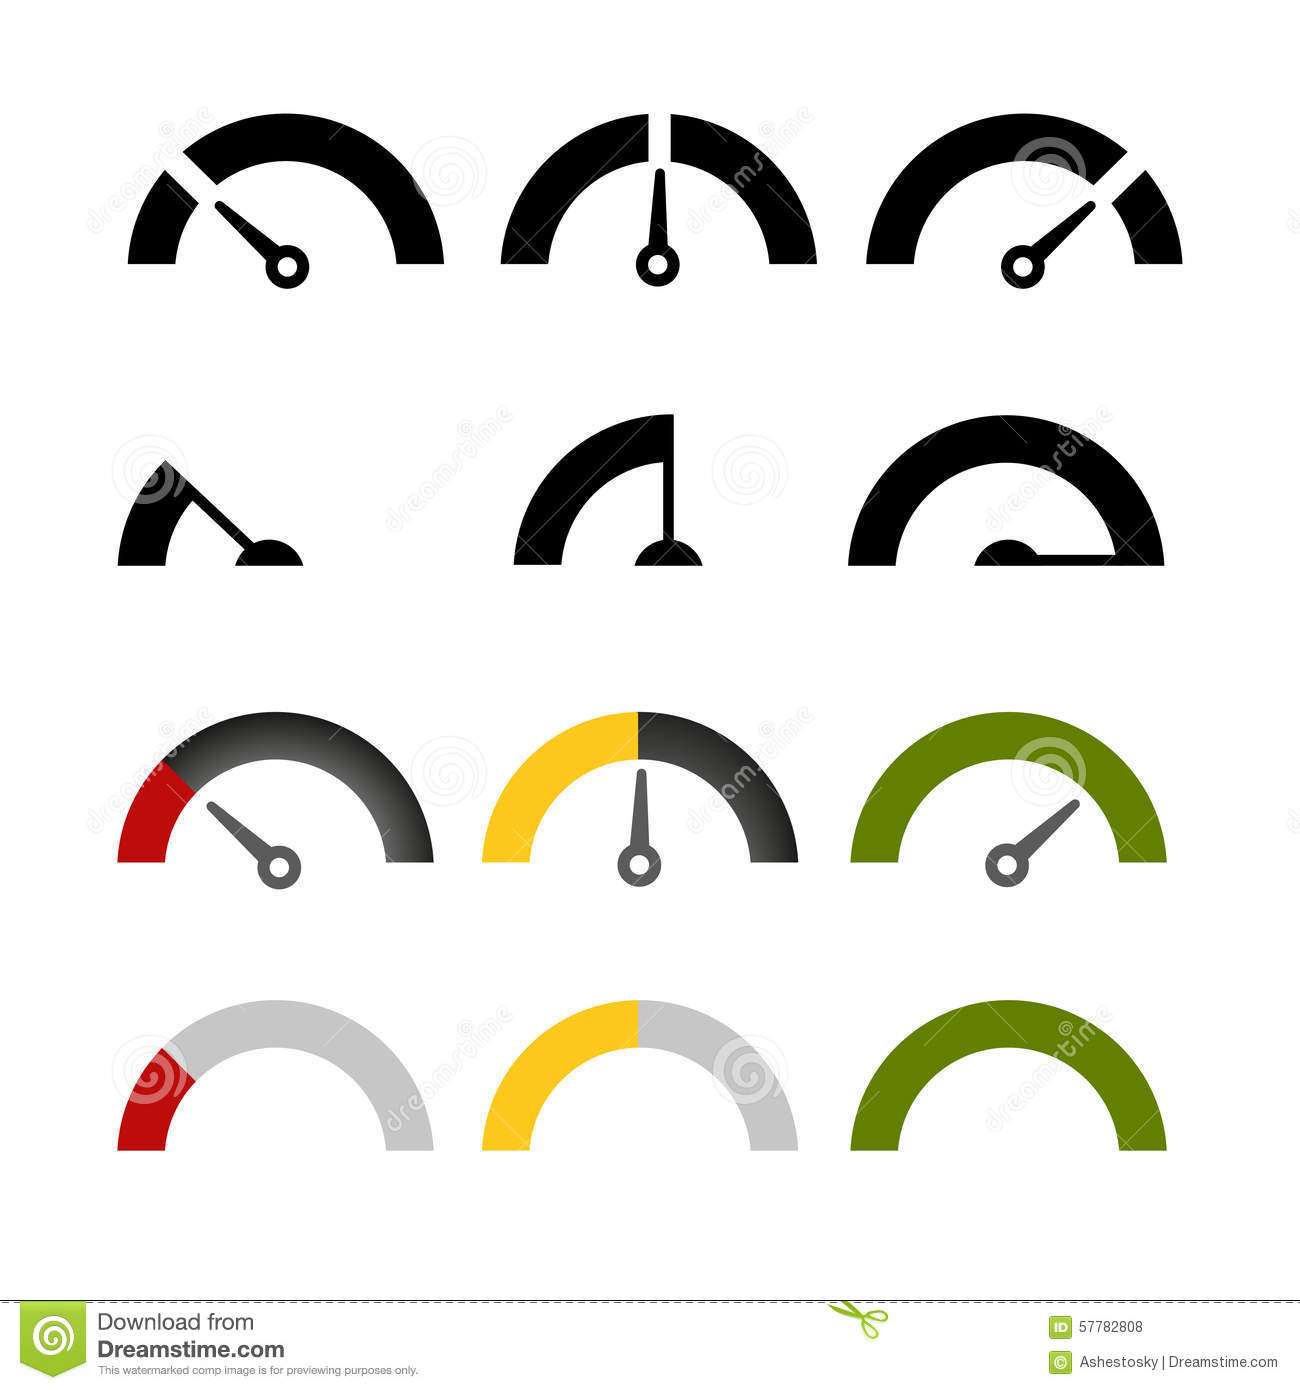 Different illustrations for different values on gauge meters from